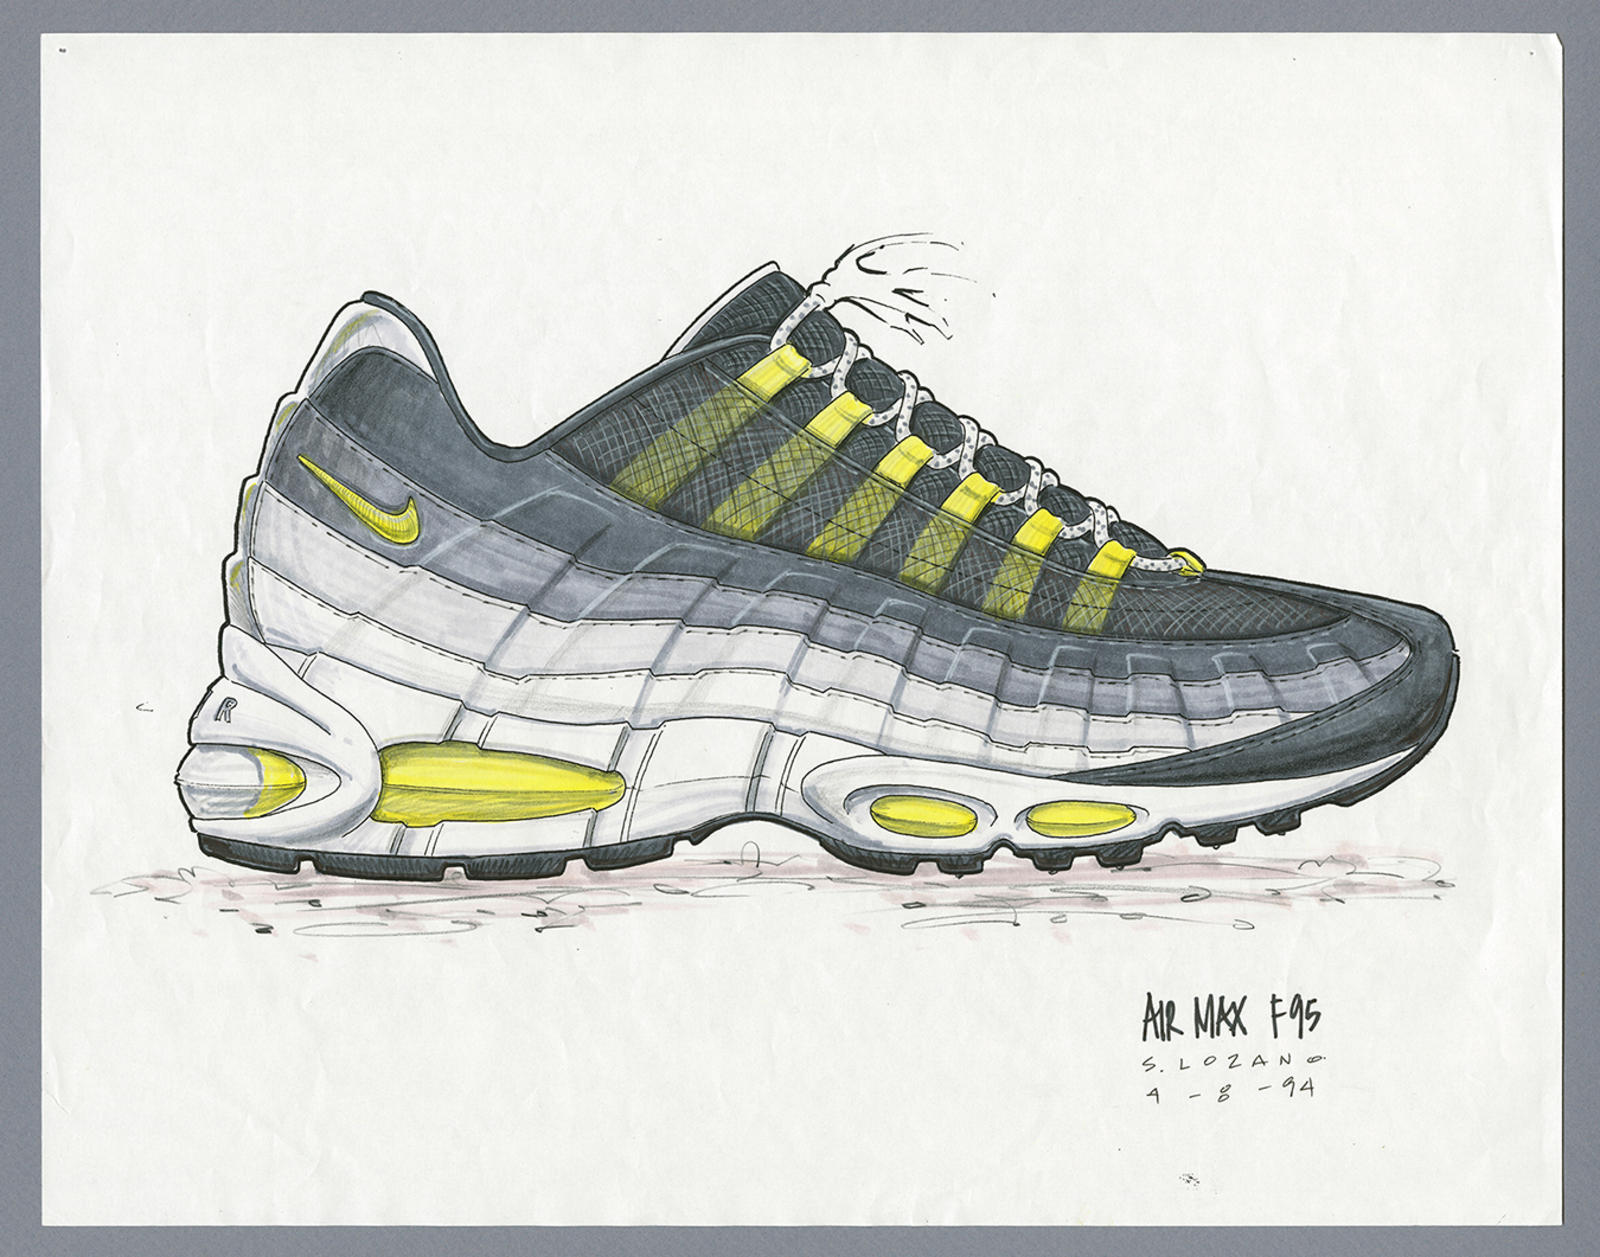 20 Things You Didn\'t Know About the Air Max 95